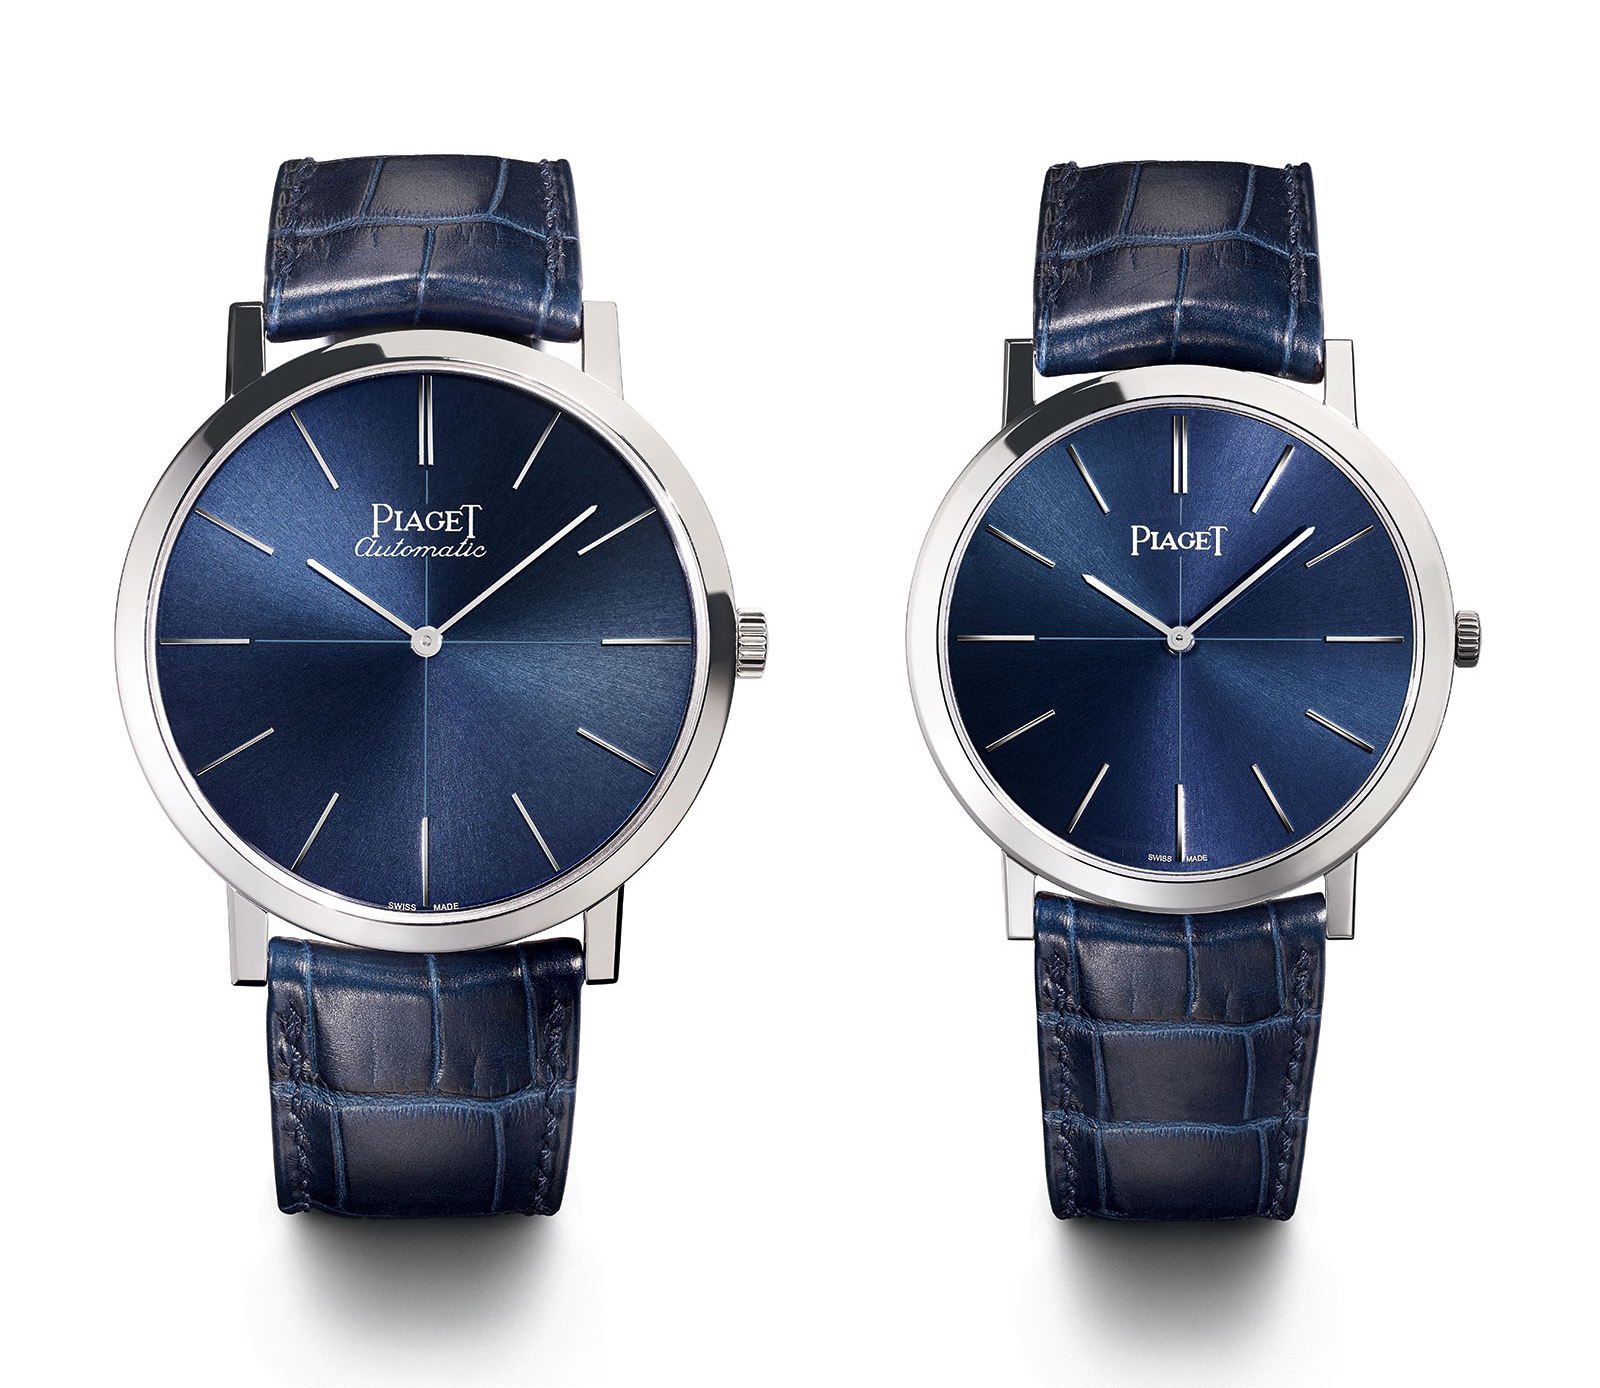 limelight owned pre piaget watches